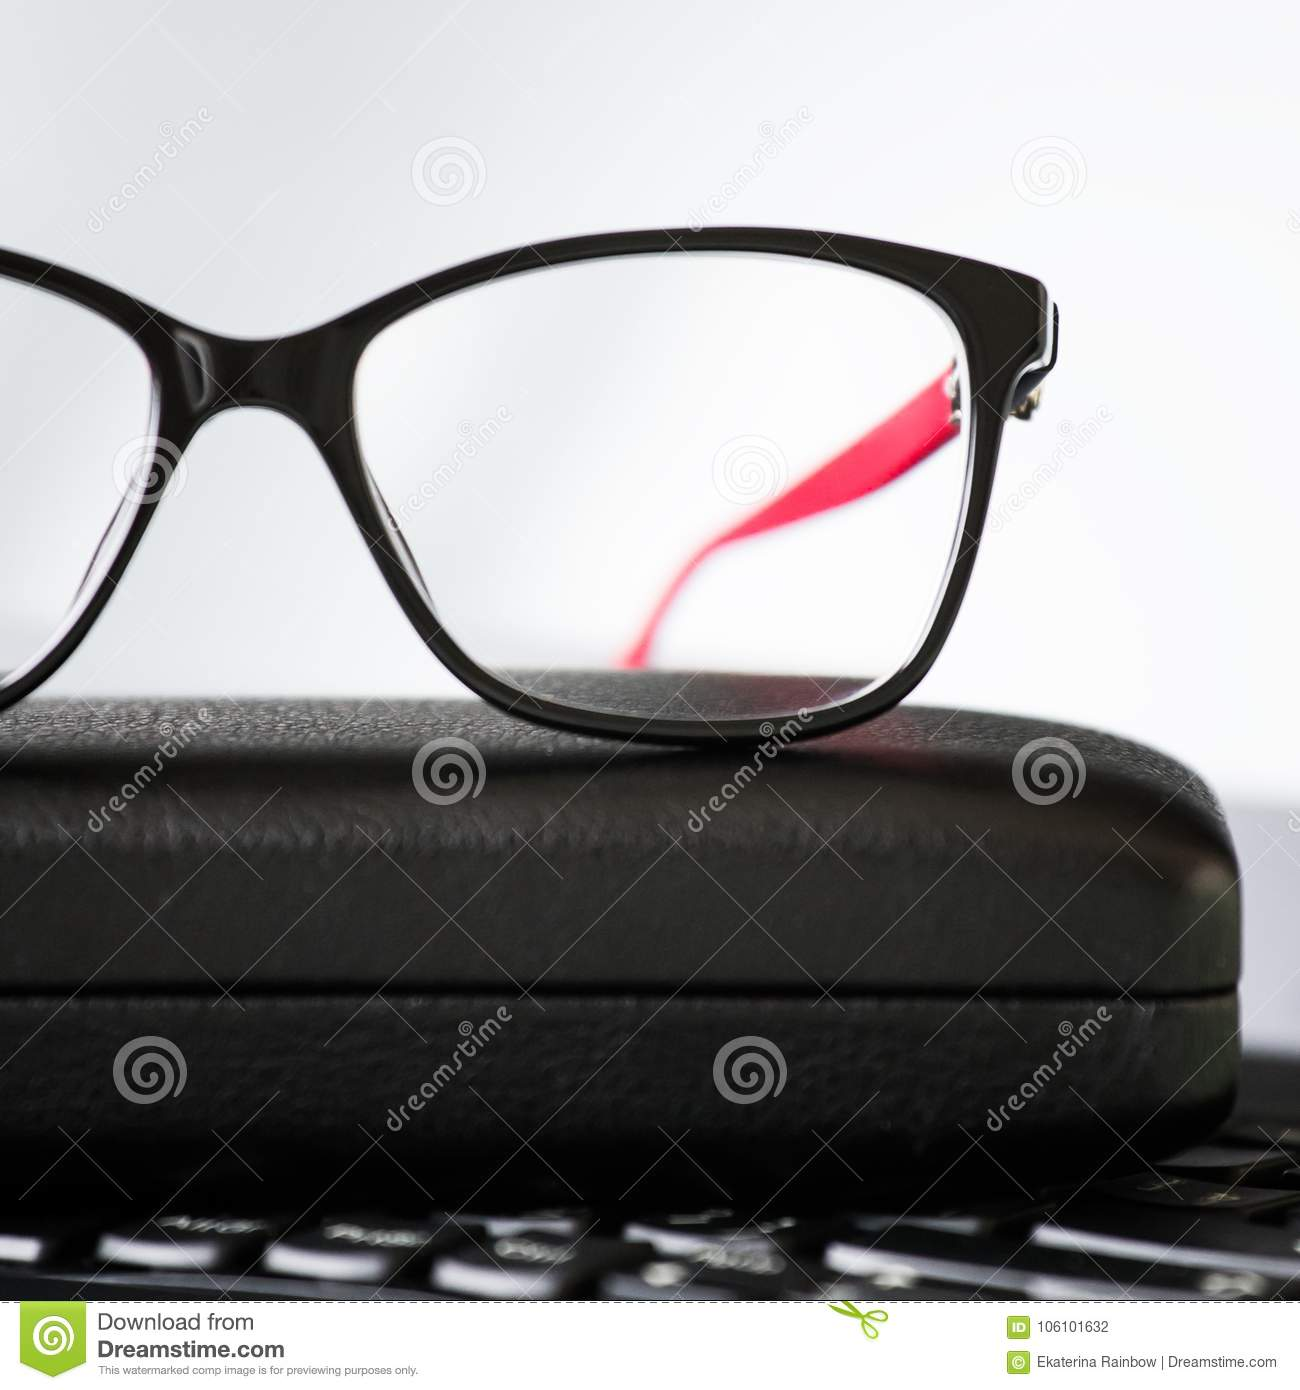 eb3623bba4 Beautiful eye glasses and laptop. Business optical background. Plastic lens  glasses and black red frame. Woman fashion style.